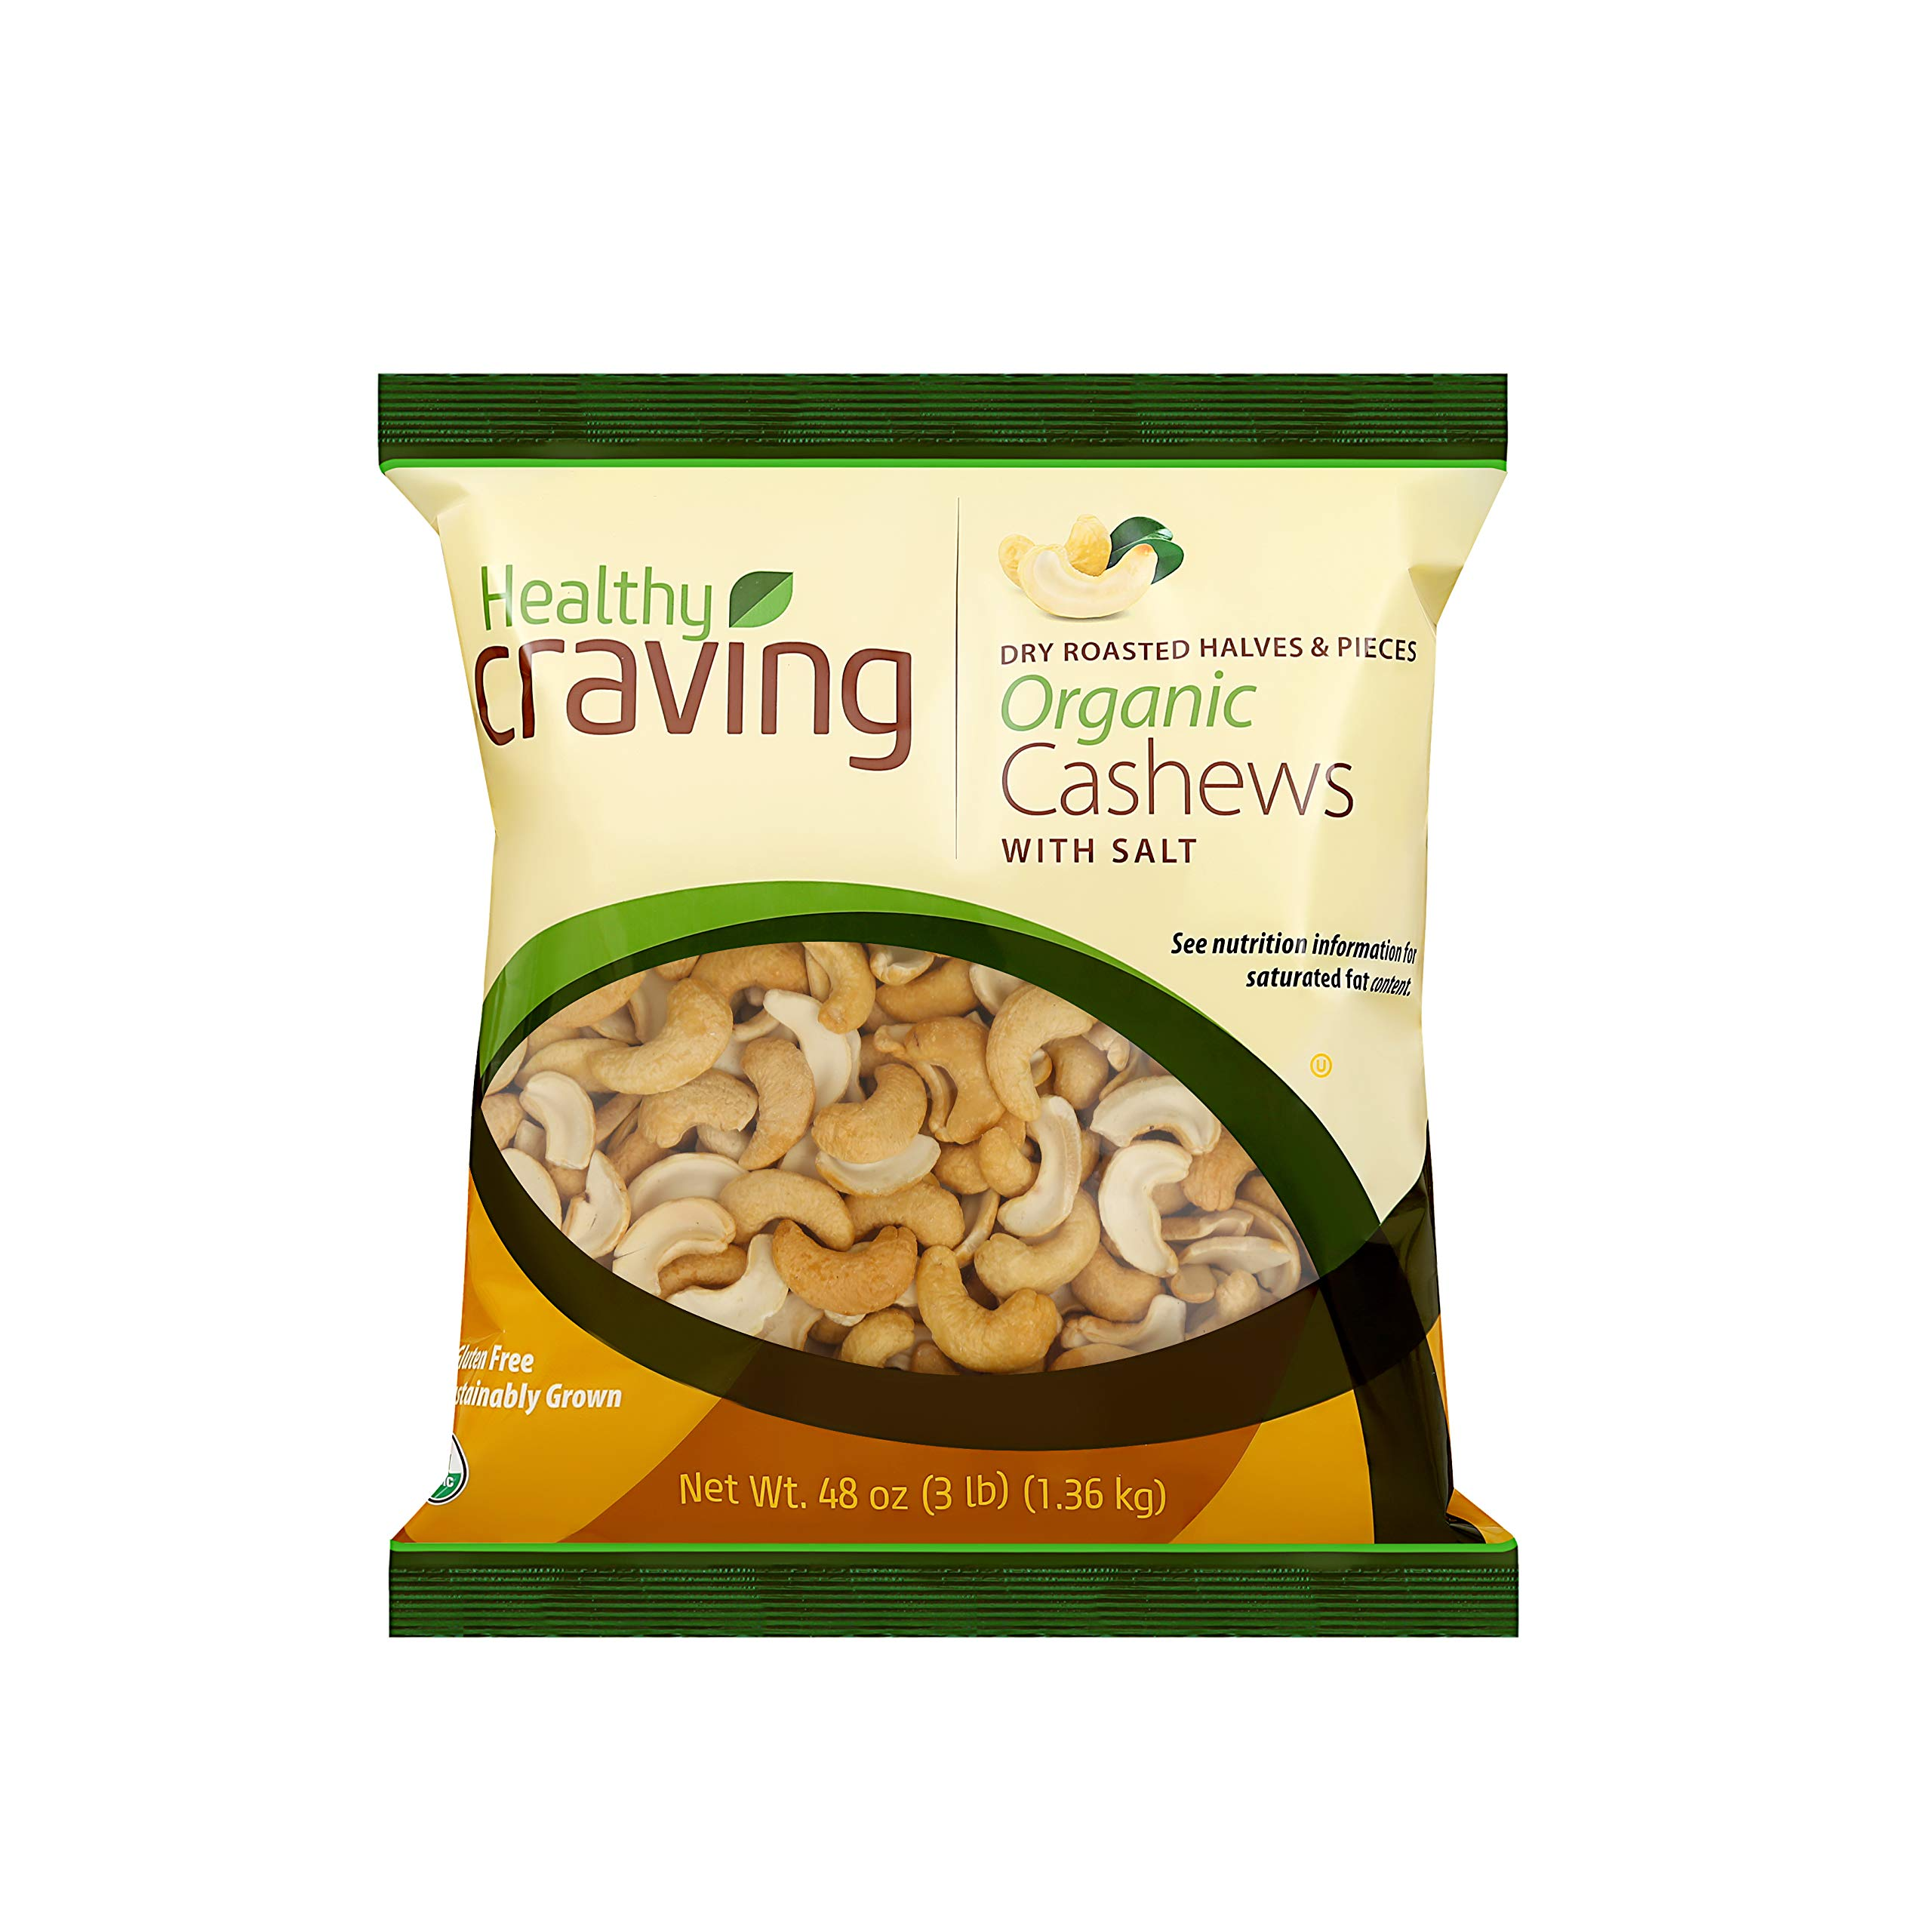 Healthy Craving Dry Roasted Salted Organic Halves and Pieces, 48oz